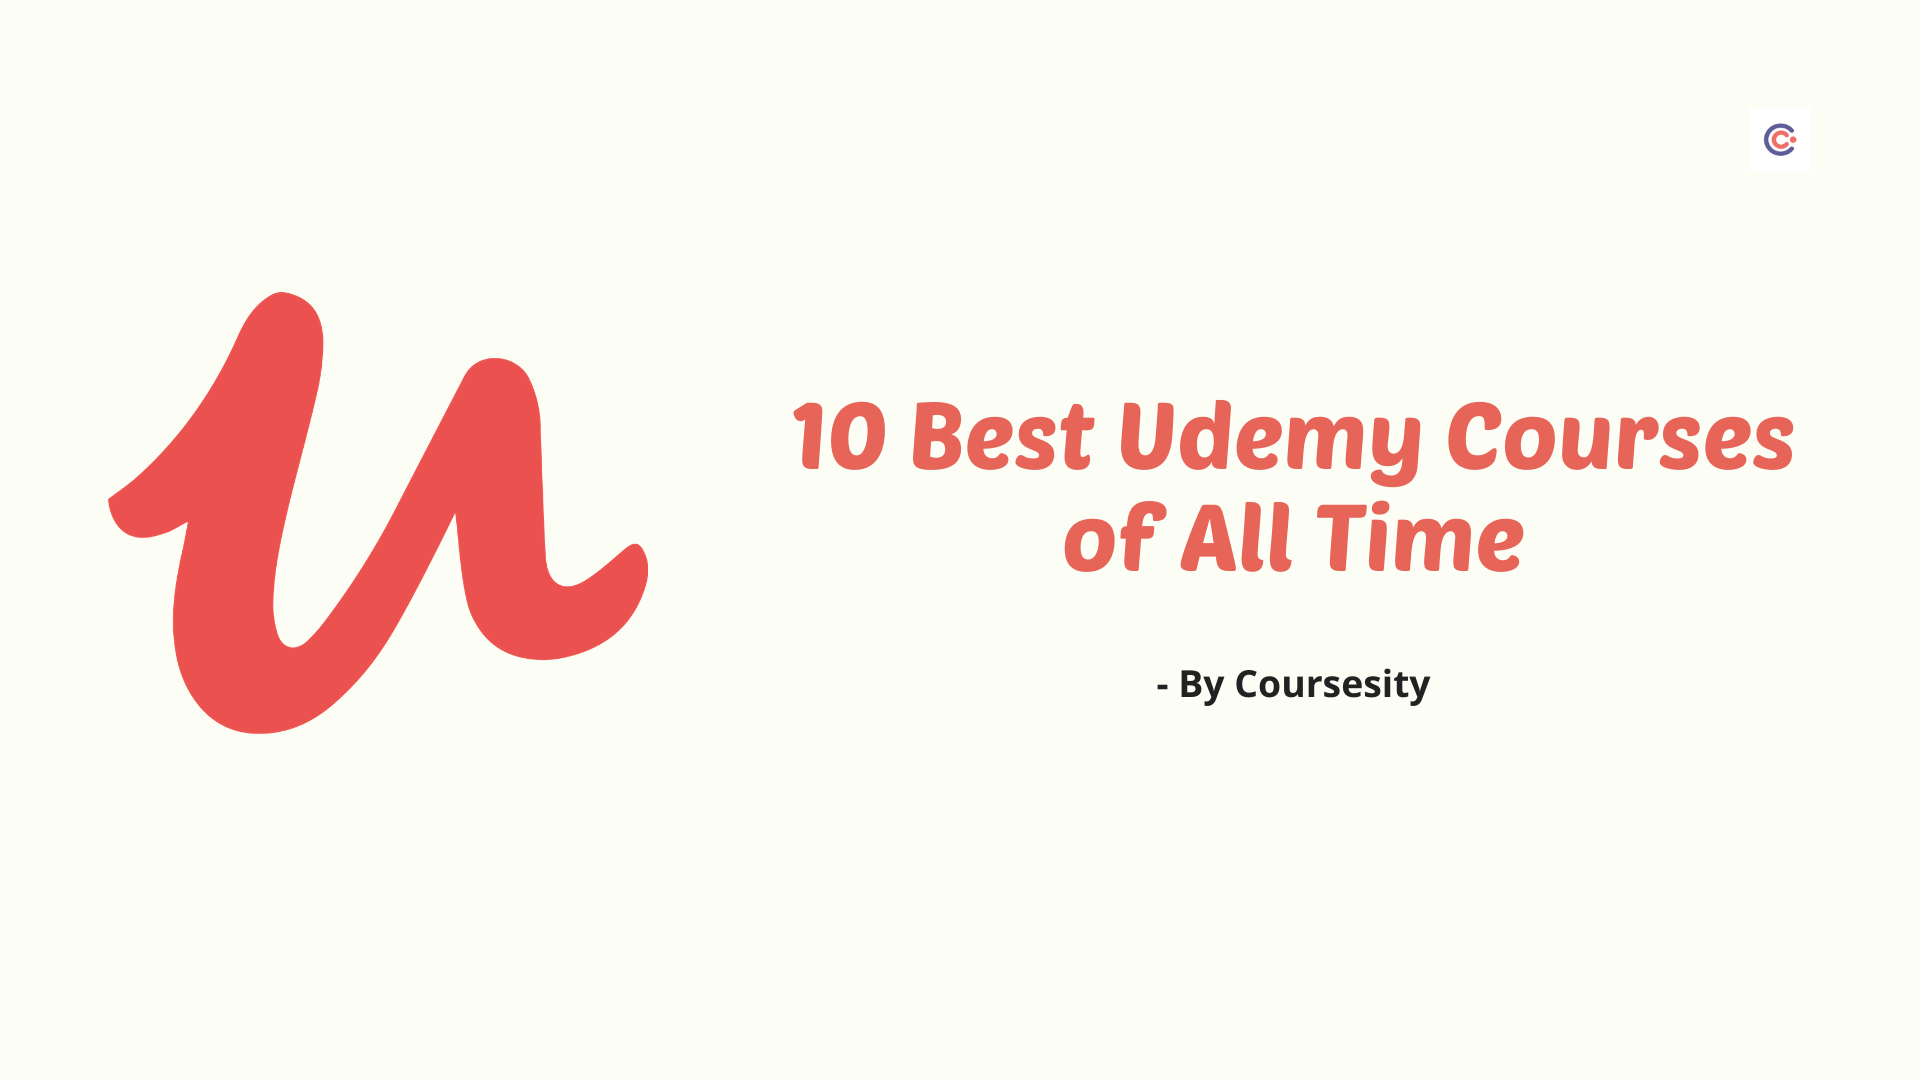 10 Best Udemy Courses of All Time in 2021